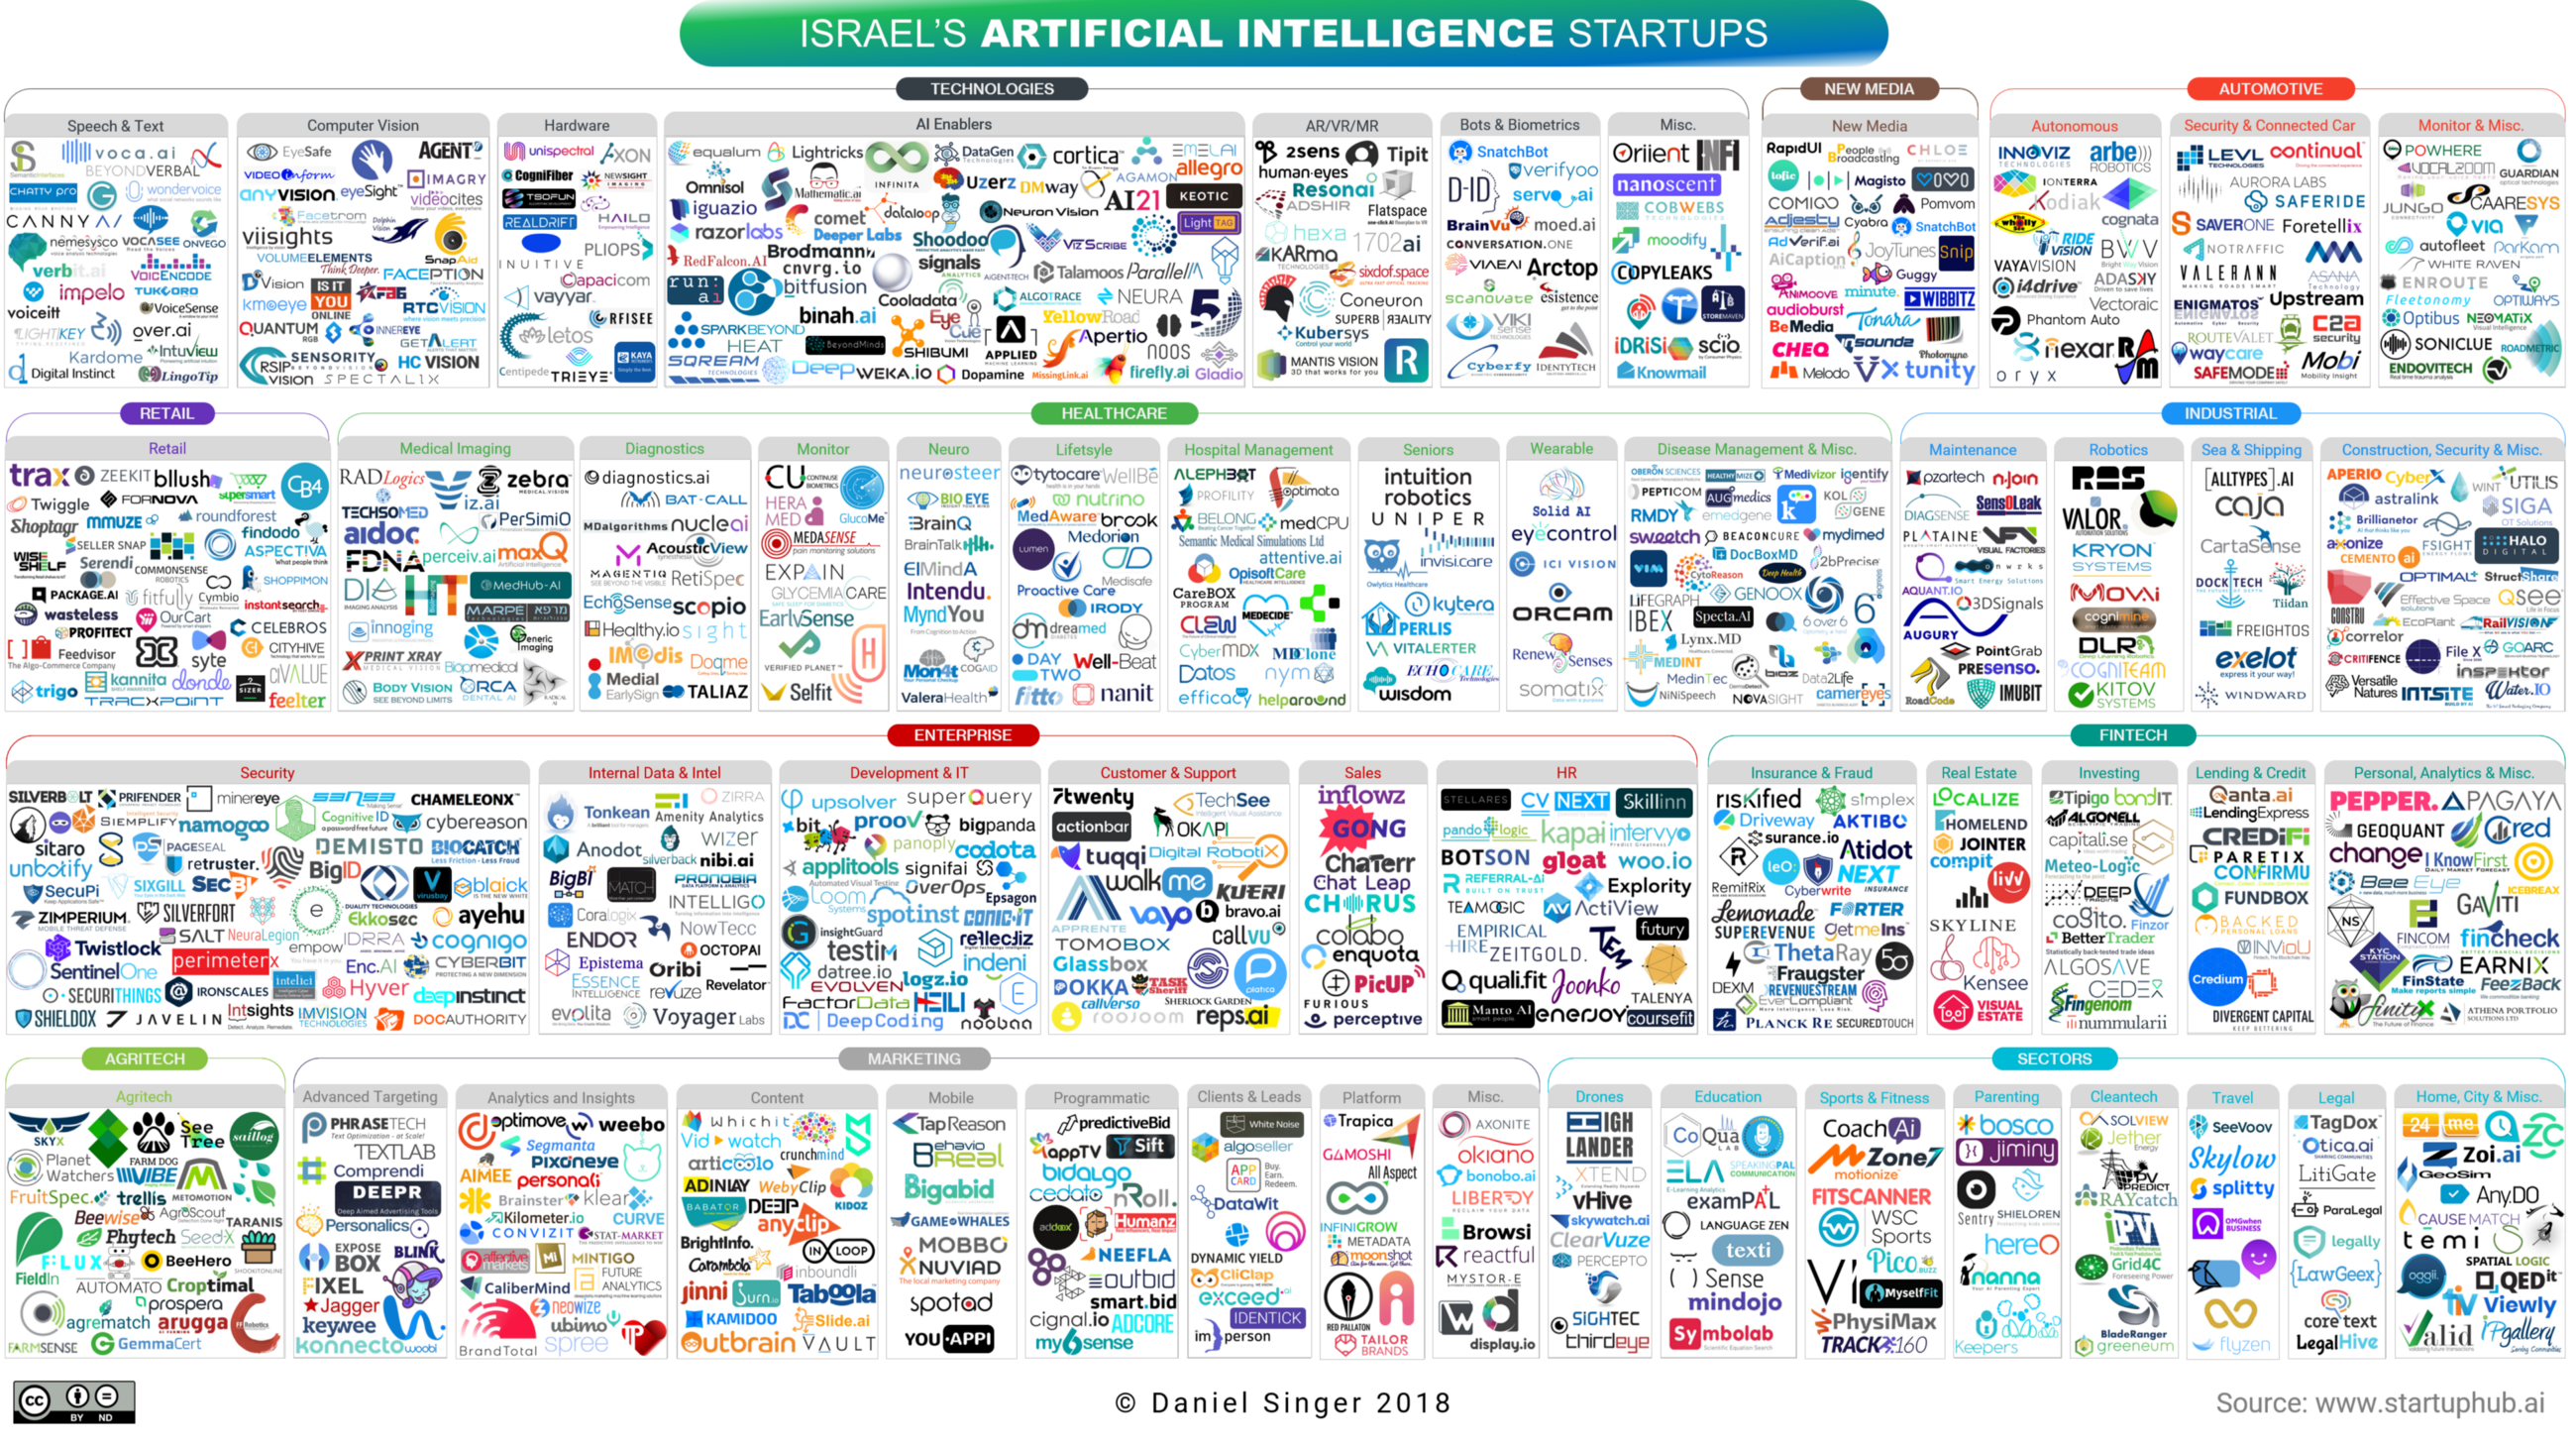 Israel's Artificial Intelligence Landscape 2018 - By